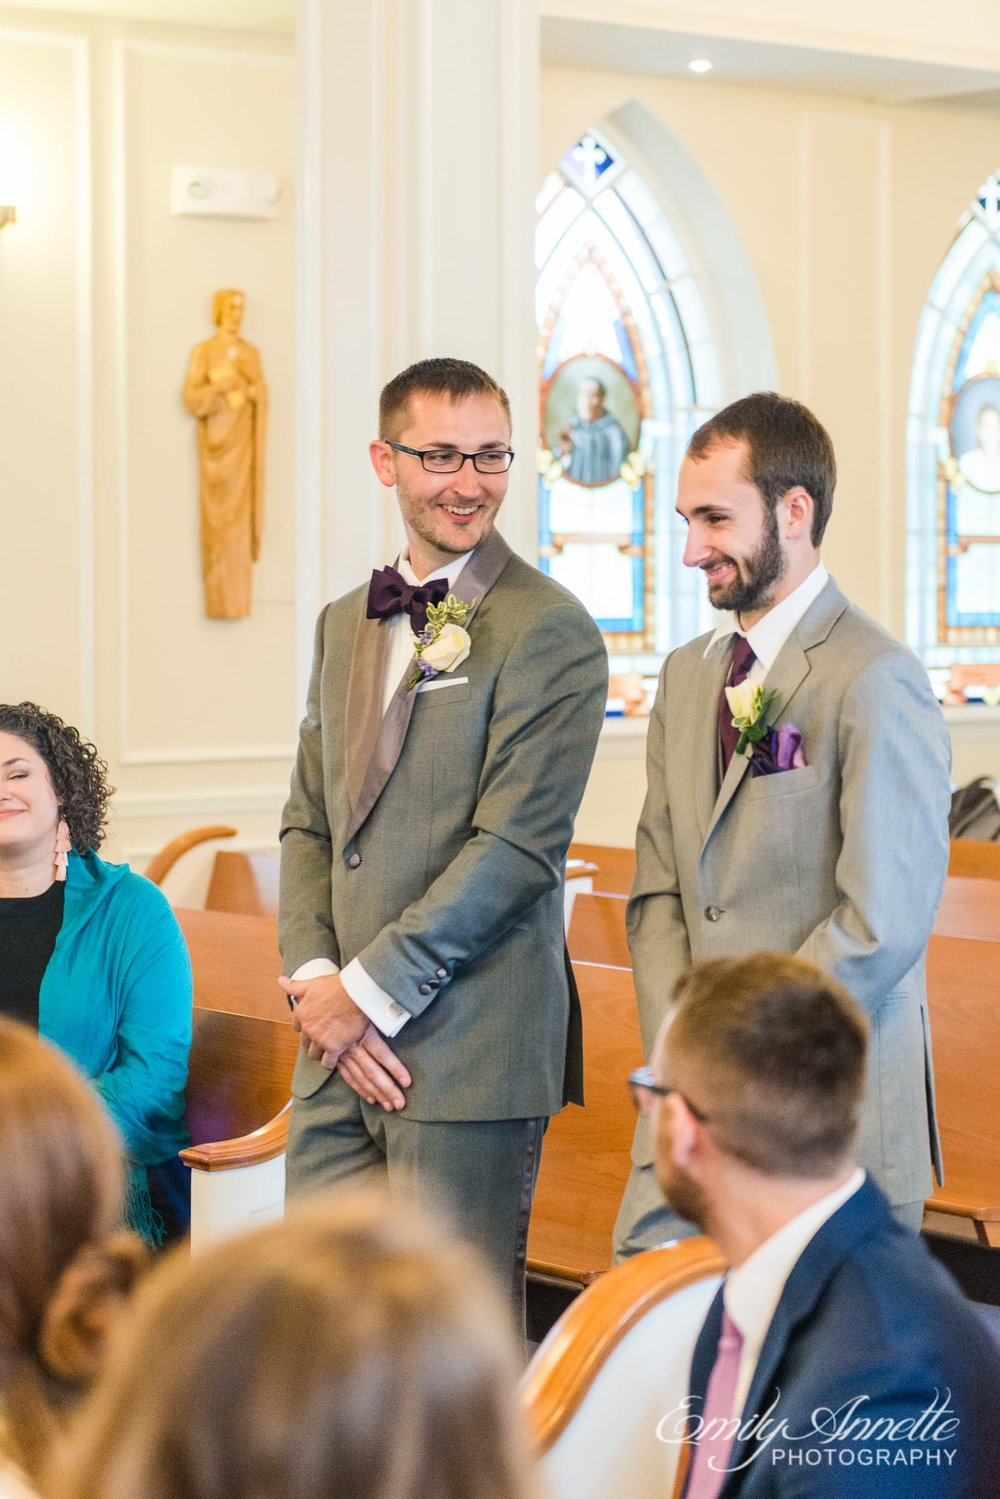 The groom and best man enter in procession during a Catholic wedding ceremony at Marymount University's Sacred Heart of Mary Chapel in Arlington, Virginia